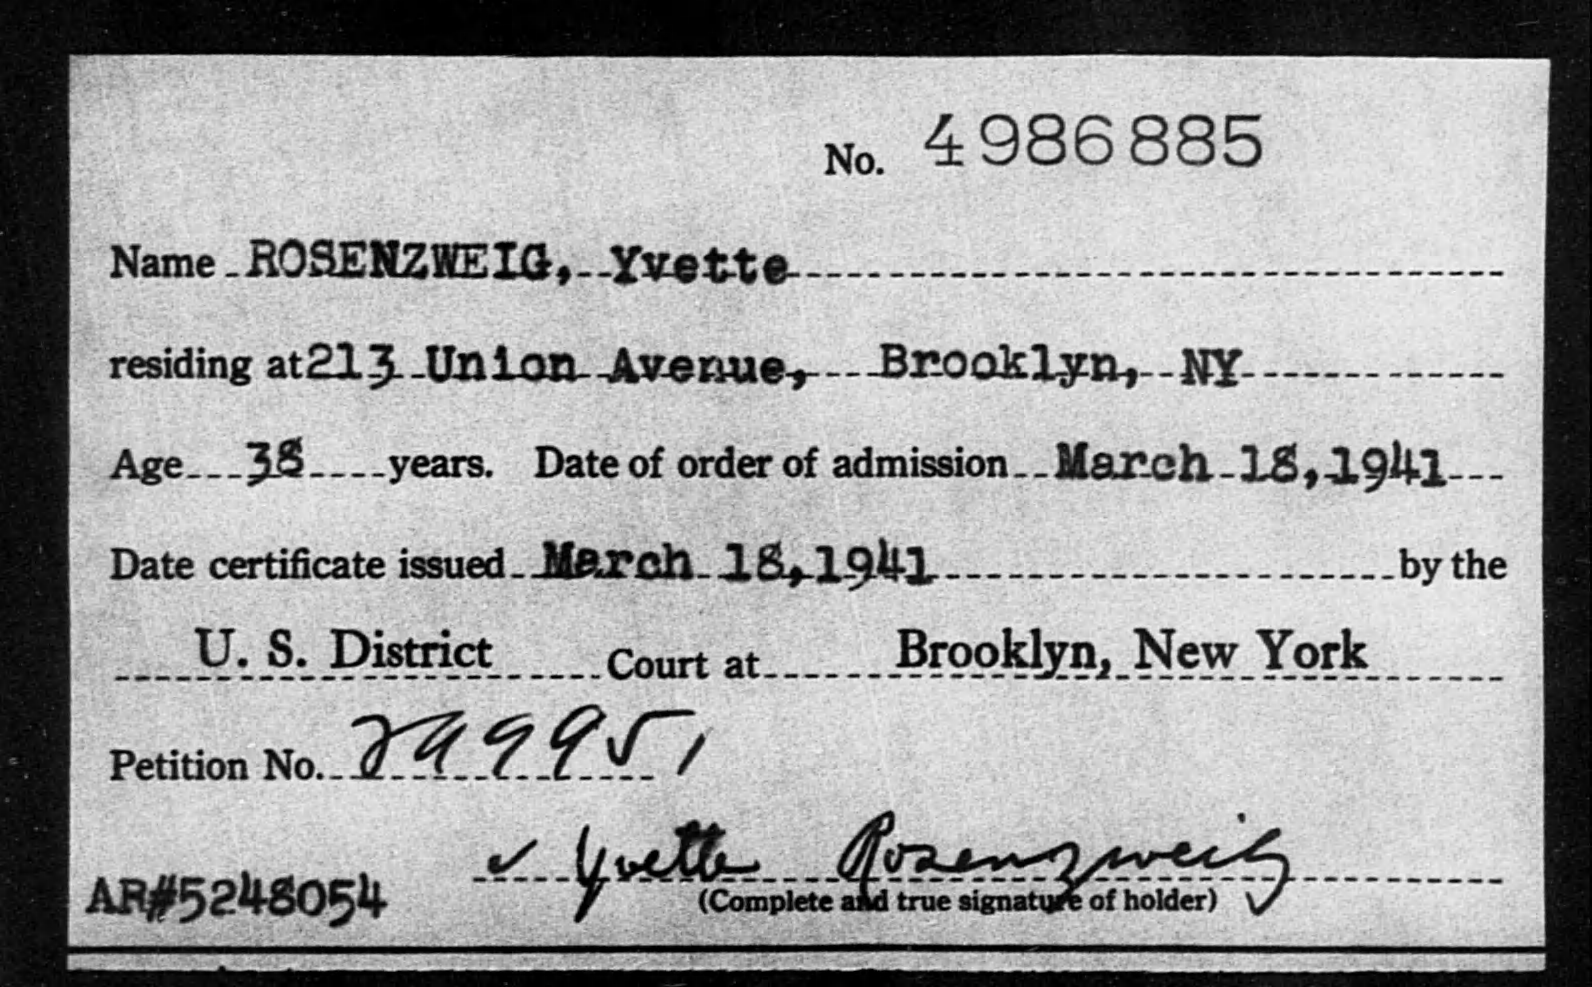 ROSENZWEIG, Yvette - Born: [BLANK], Naturalized: 1941